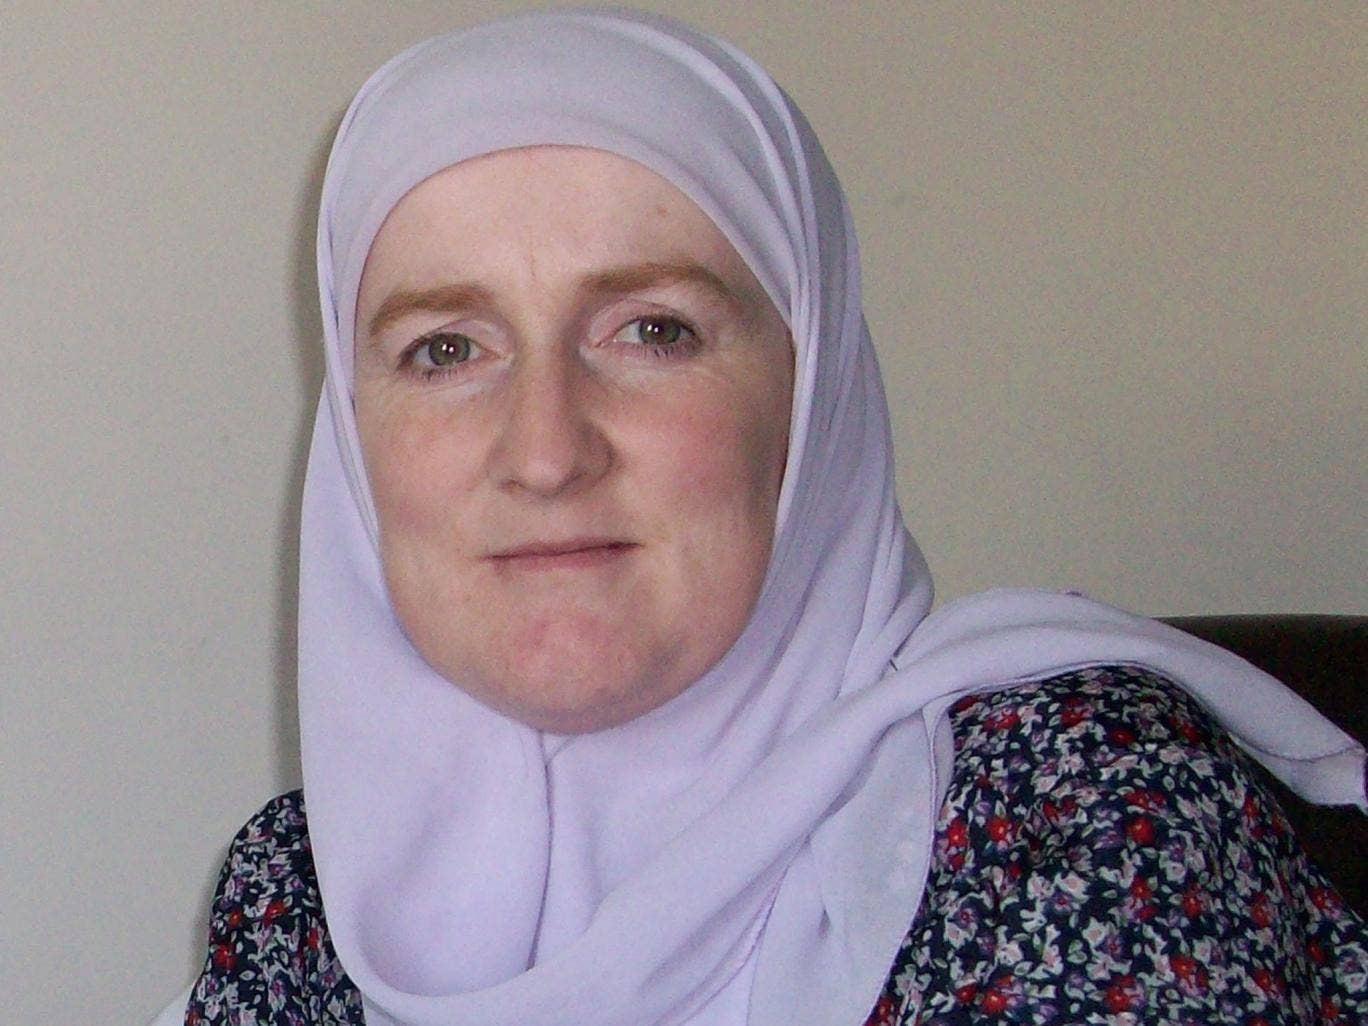 Julie Siddiqi, executive director of the Islamic Society of Britain, was one of the first Muslim figures to speak out on the issue